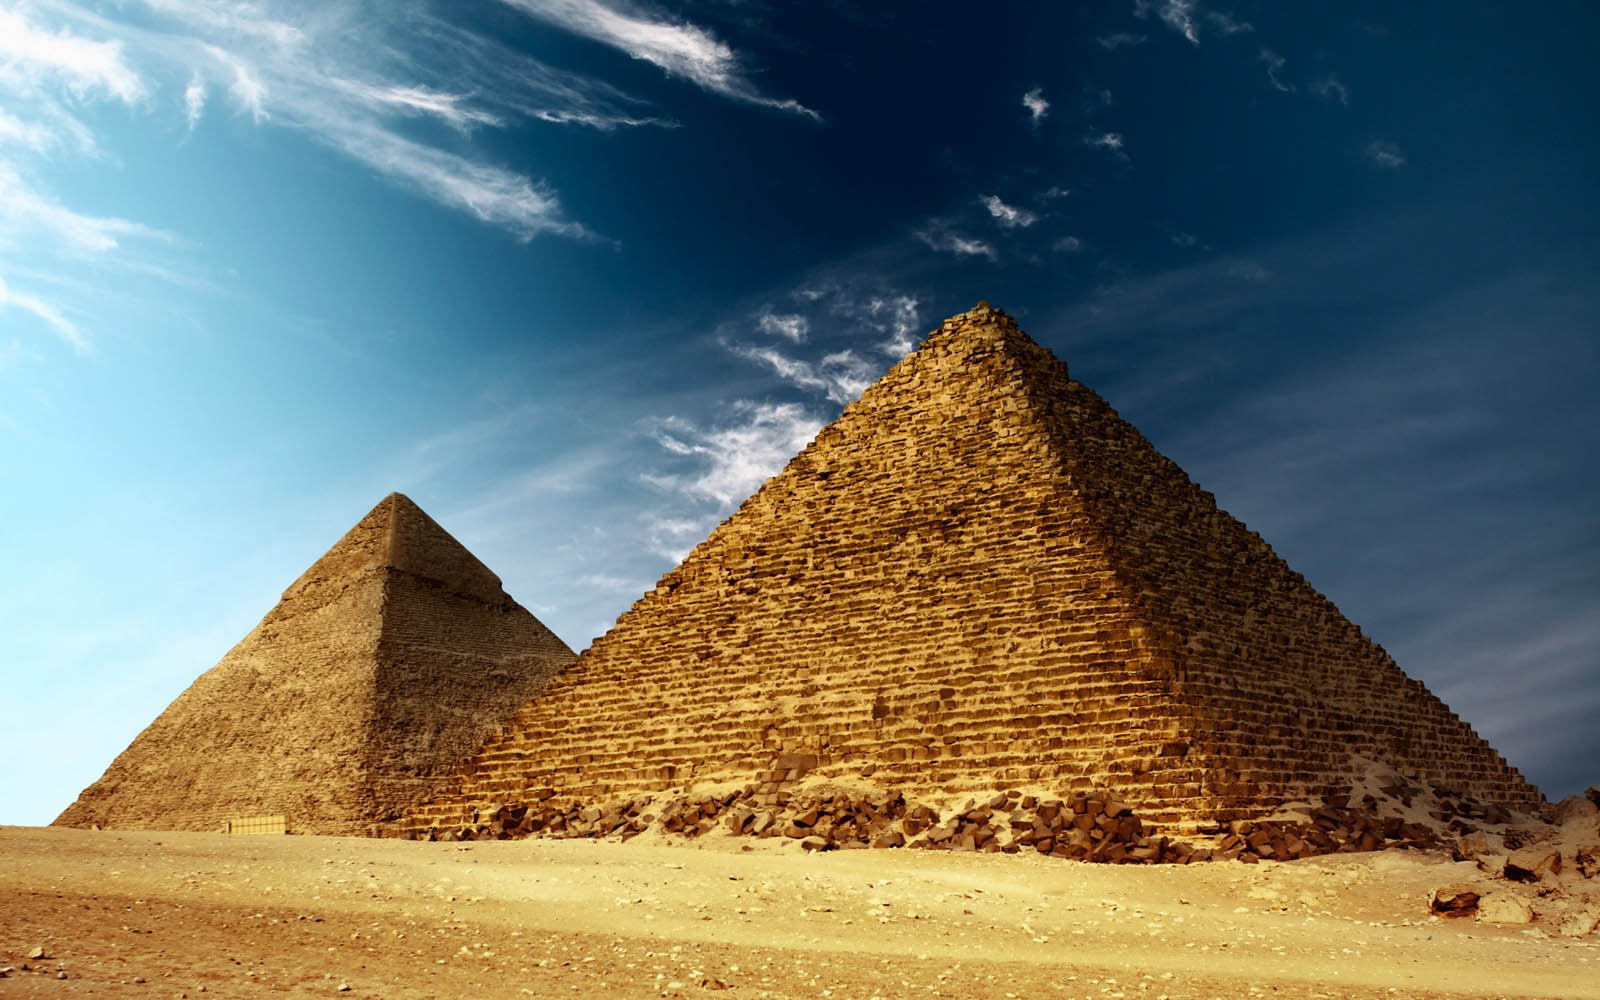 Widescreen Wallpapers: Pyramids, (1600x1000 px, V.35) - BsnSCB Graphics